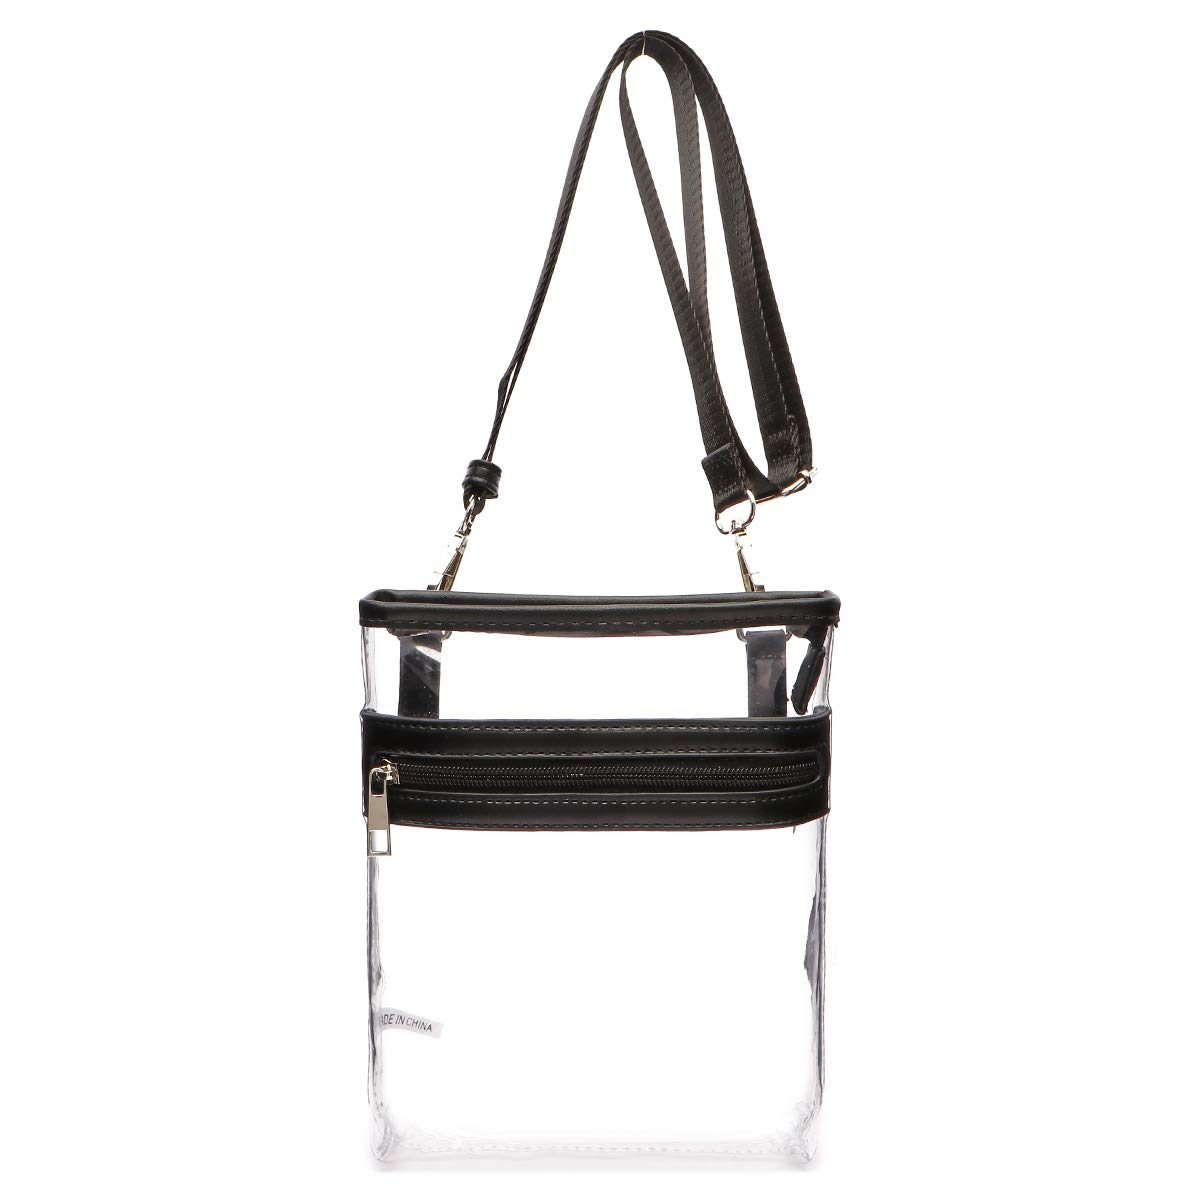 NFL Stadiums Concerts Approved Crossbody Clear Bag